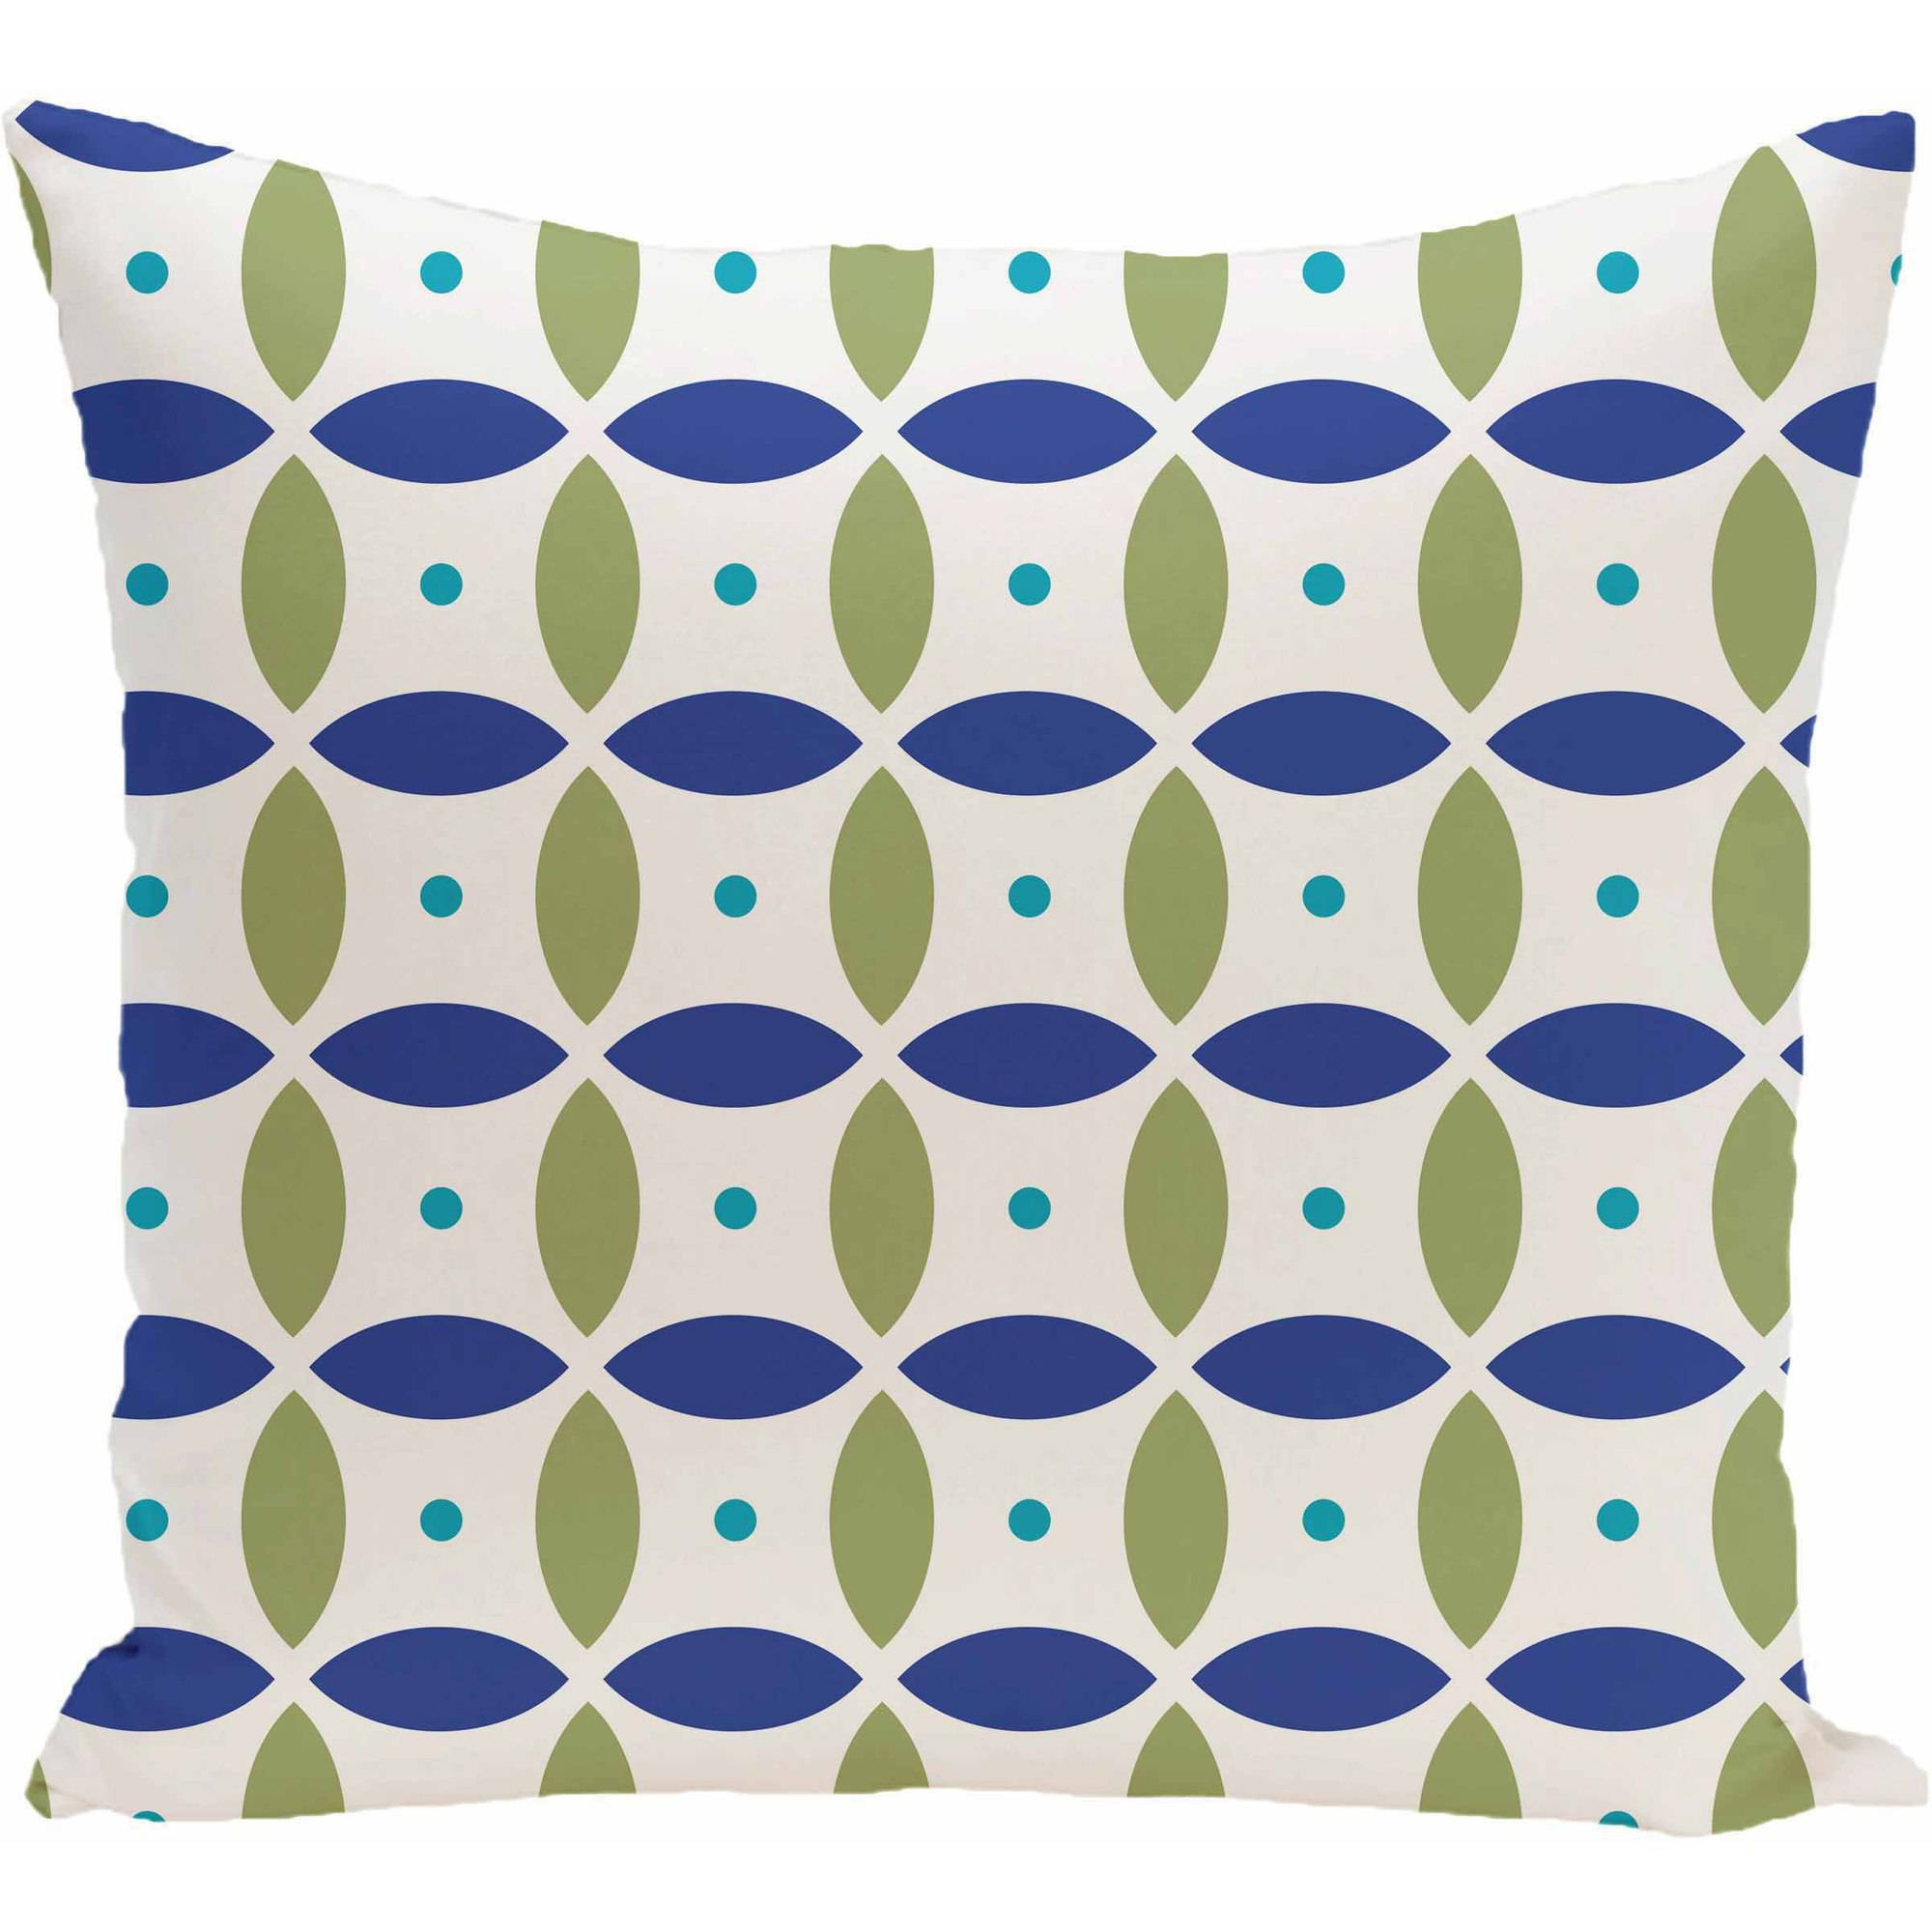 "Simply Daisy Geometric Print Decorative Pillow, 16"" x 16"""